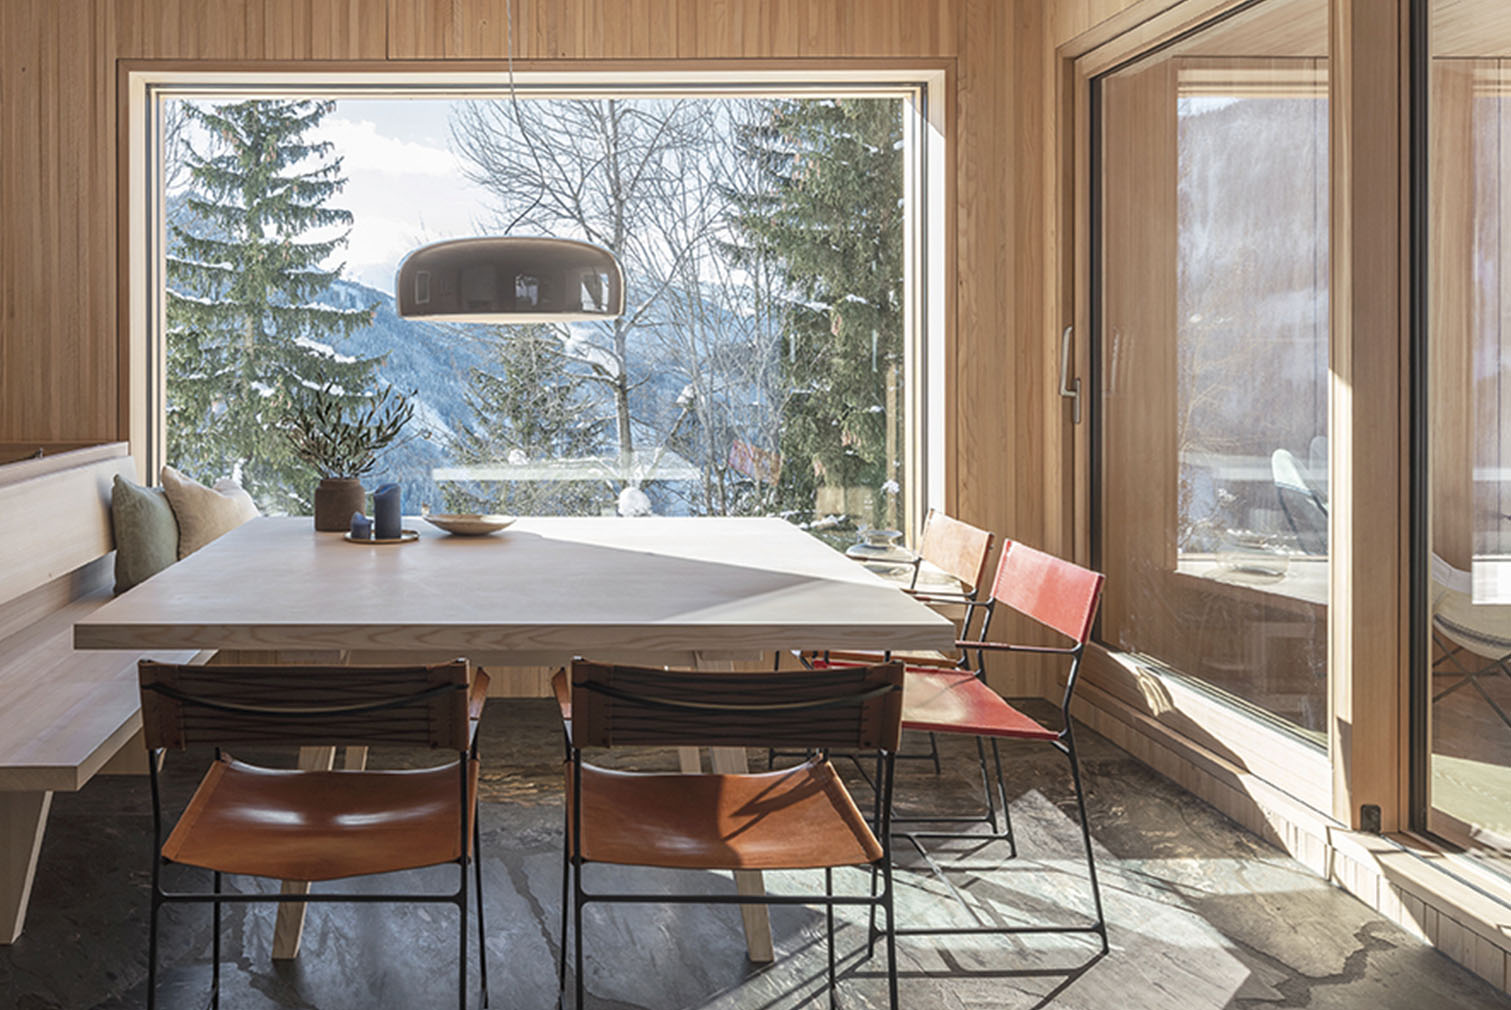 Interiors of Turmhaus Tirol in the Tyrolean Alps